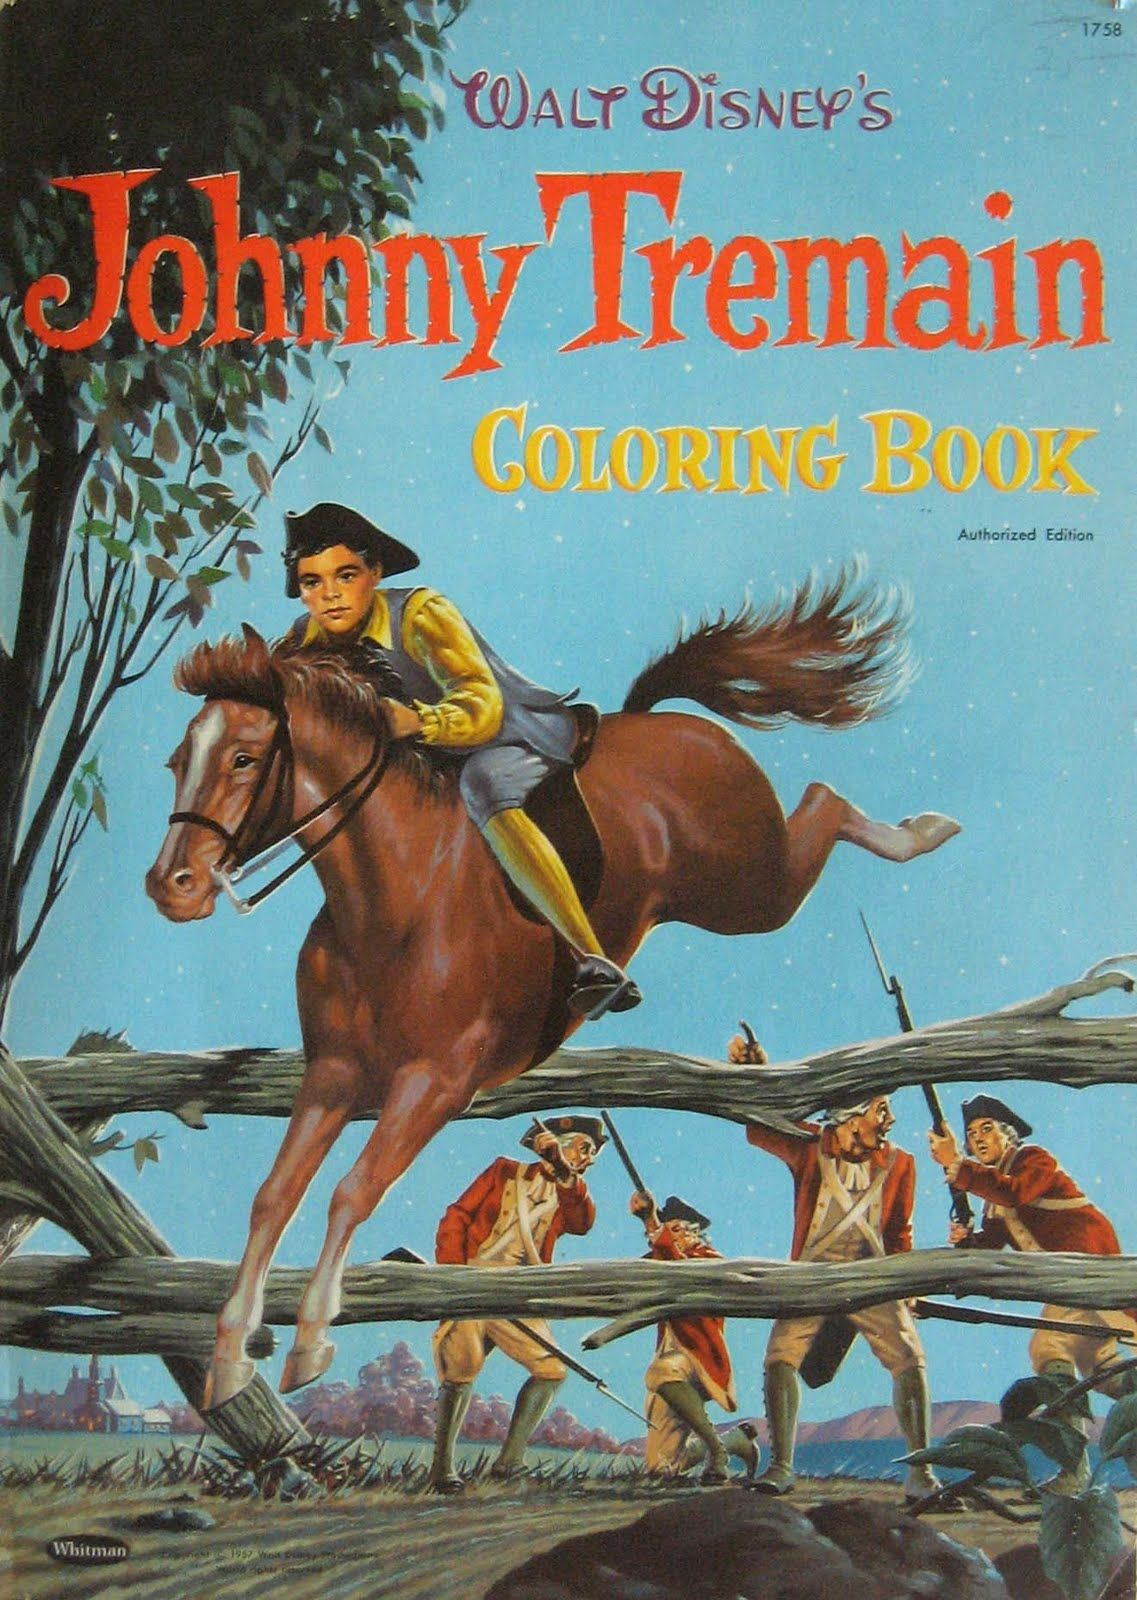 Johnny Tremain Coloring Book